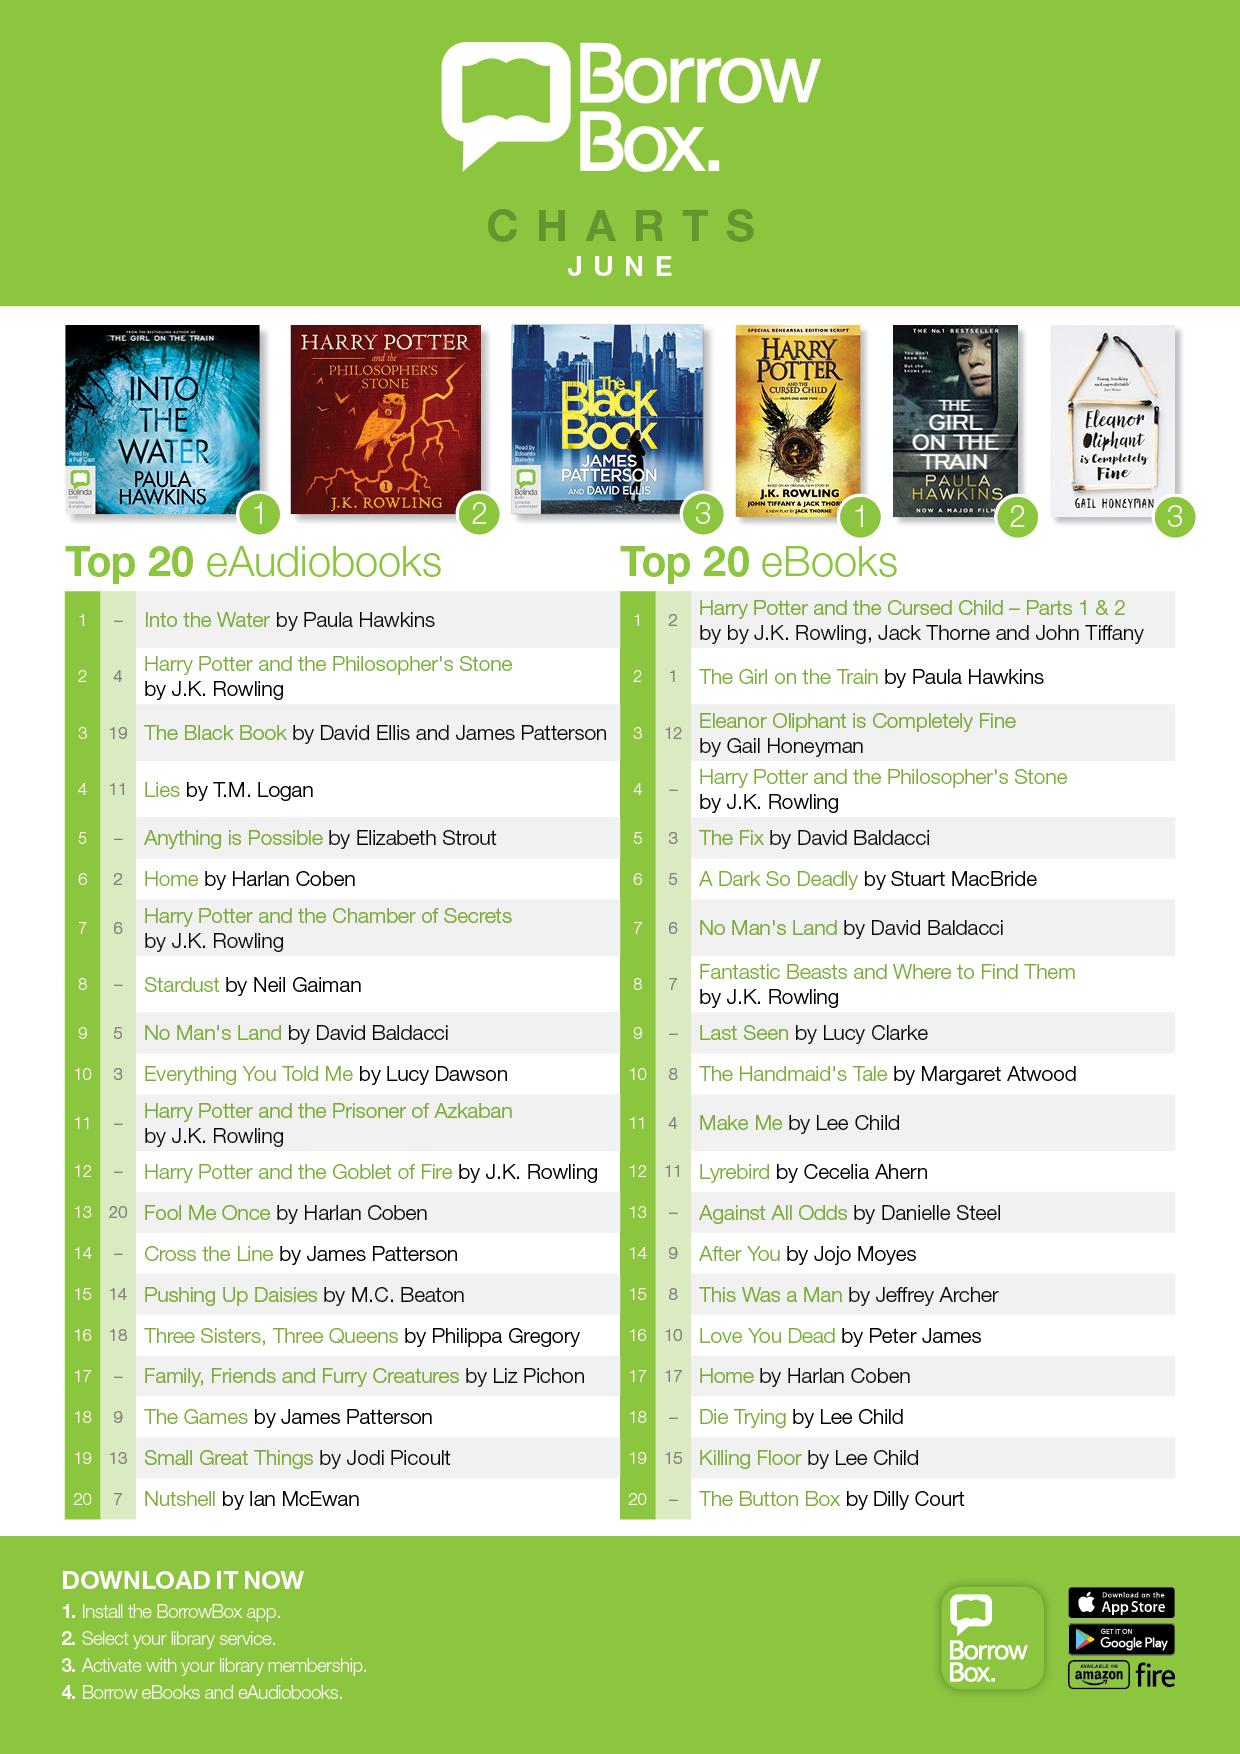 Top 20 eBooks for June - Offaly County Council